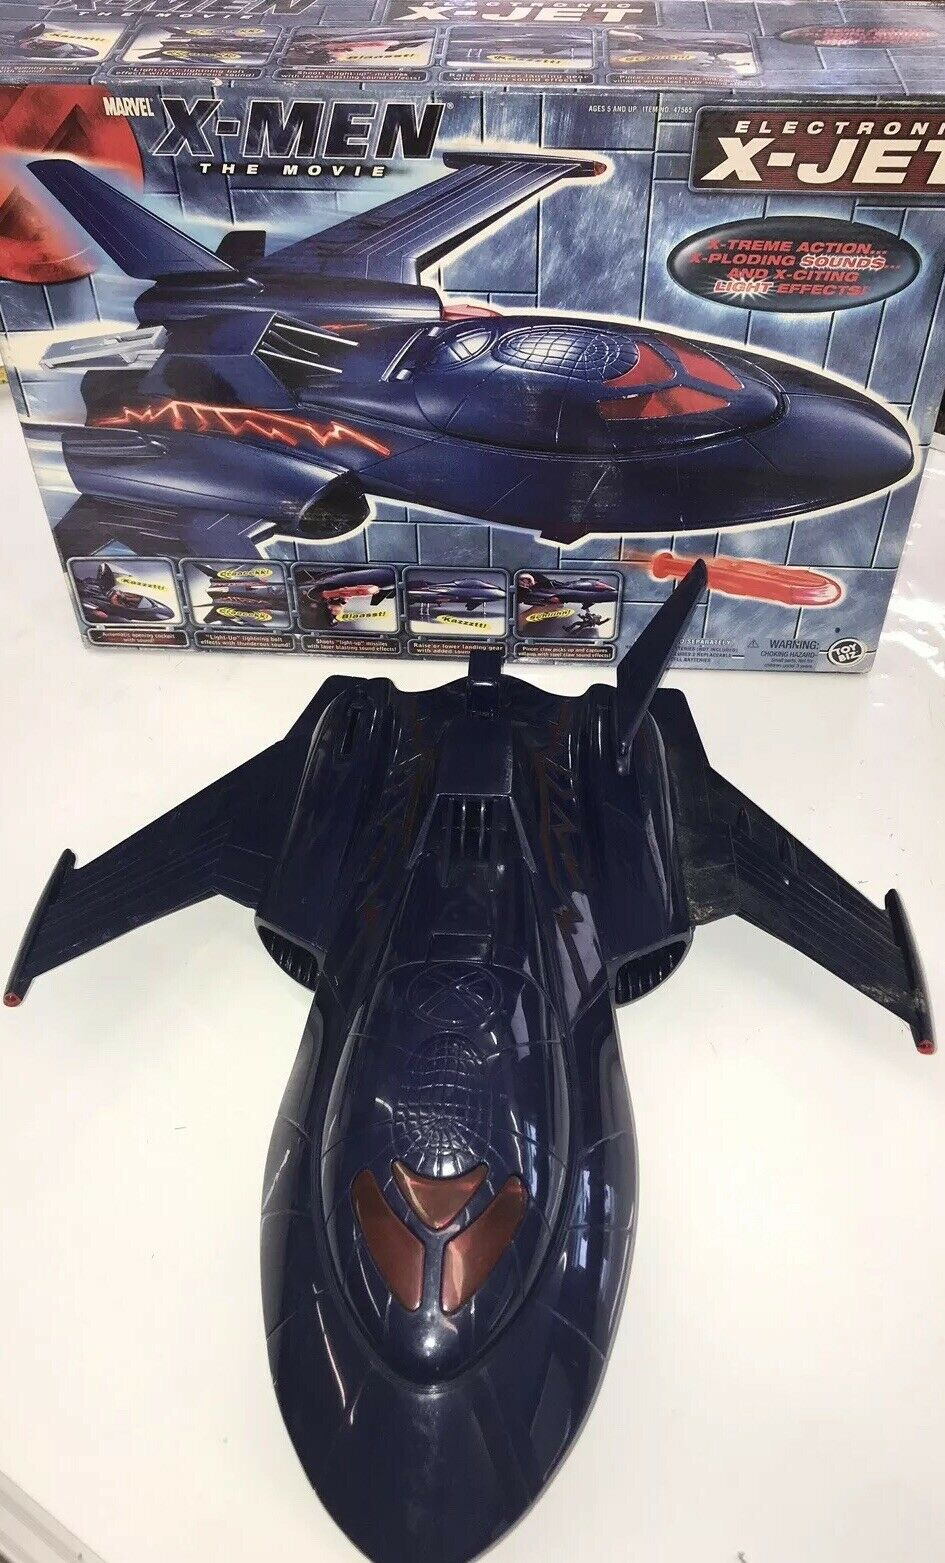 X-MEN THE MOVIE X JET ELECTRONIC X-JET Toy Biz Rare 2000 toy in box Used